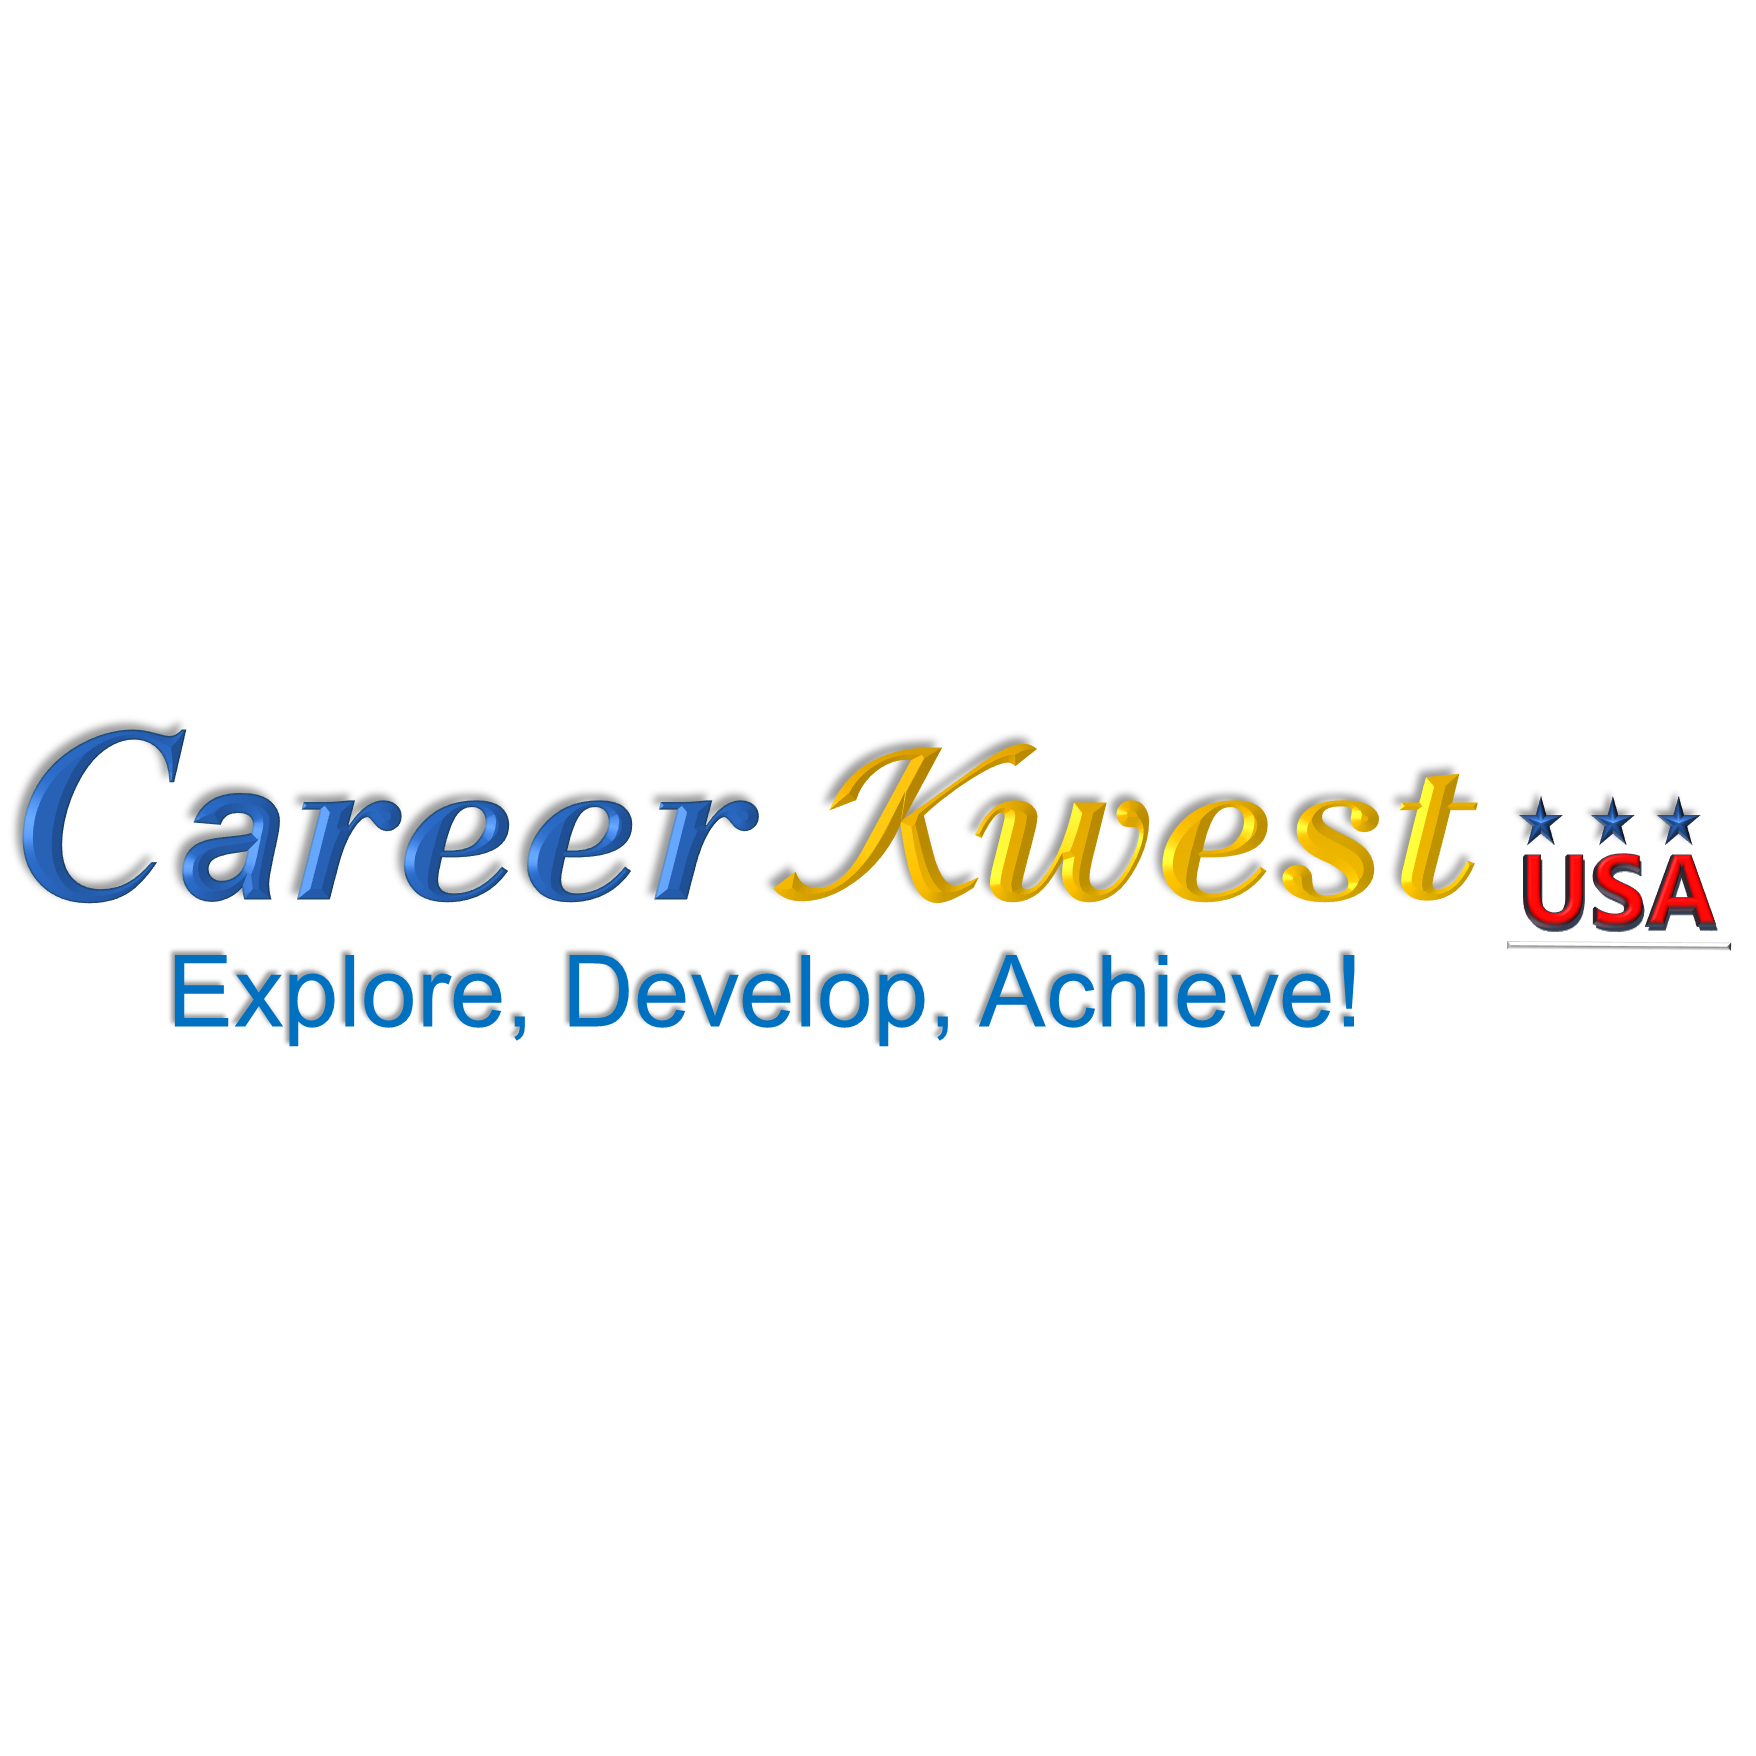 CareerKwest USA